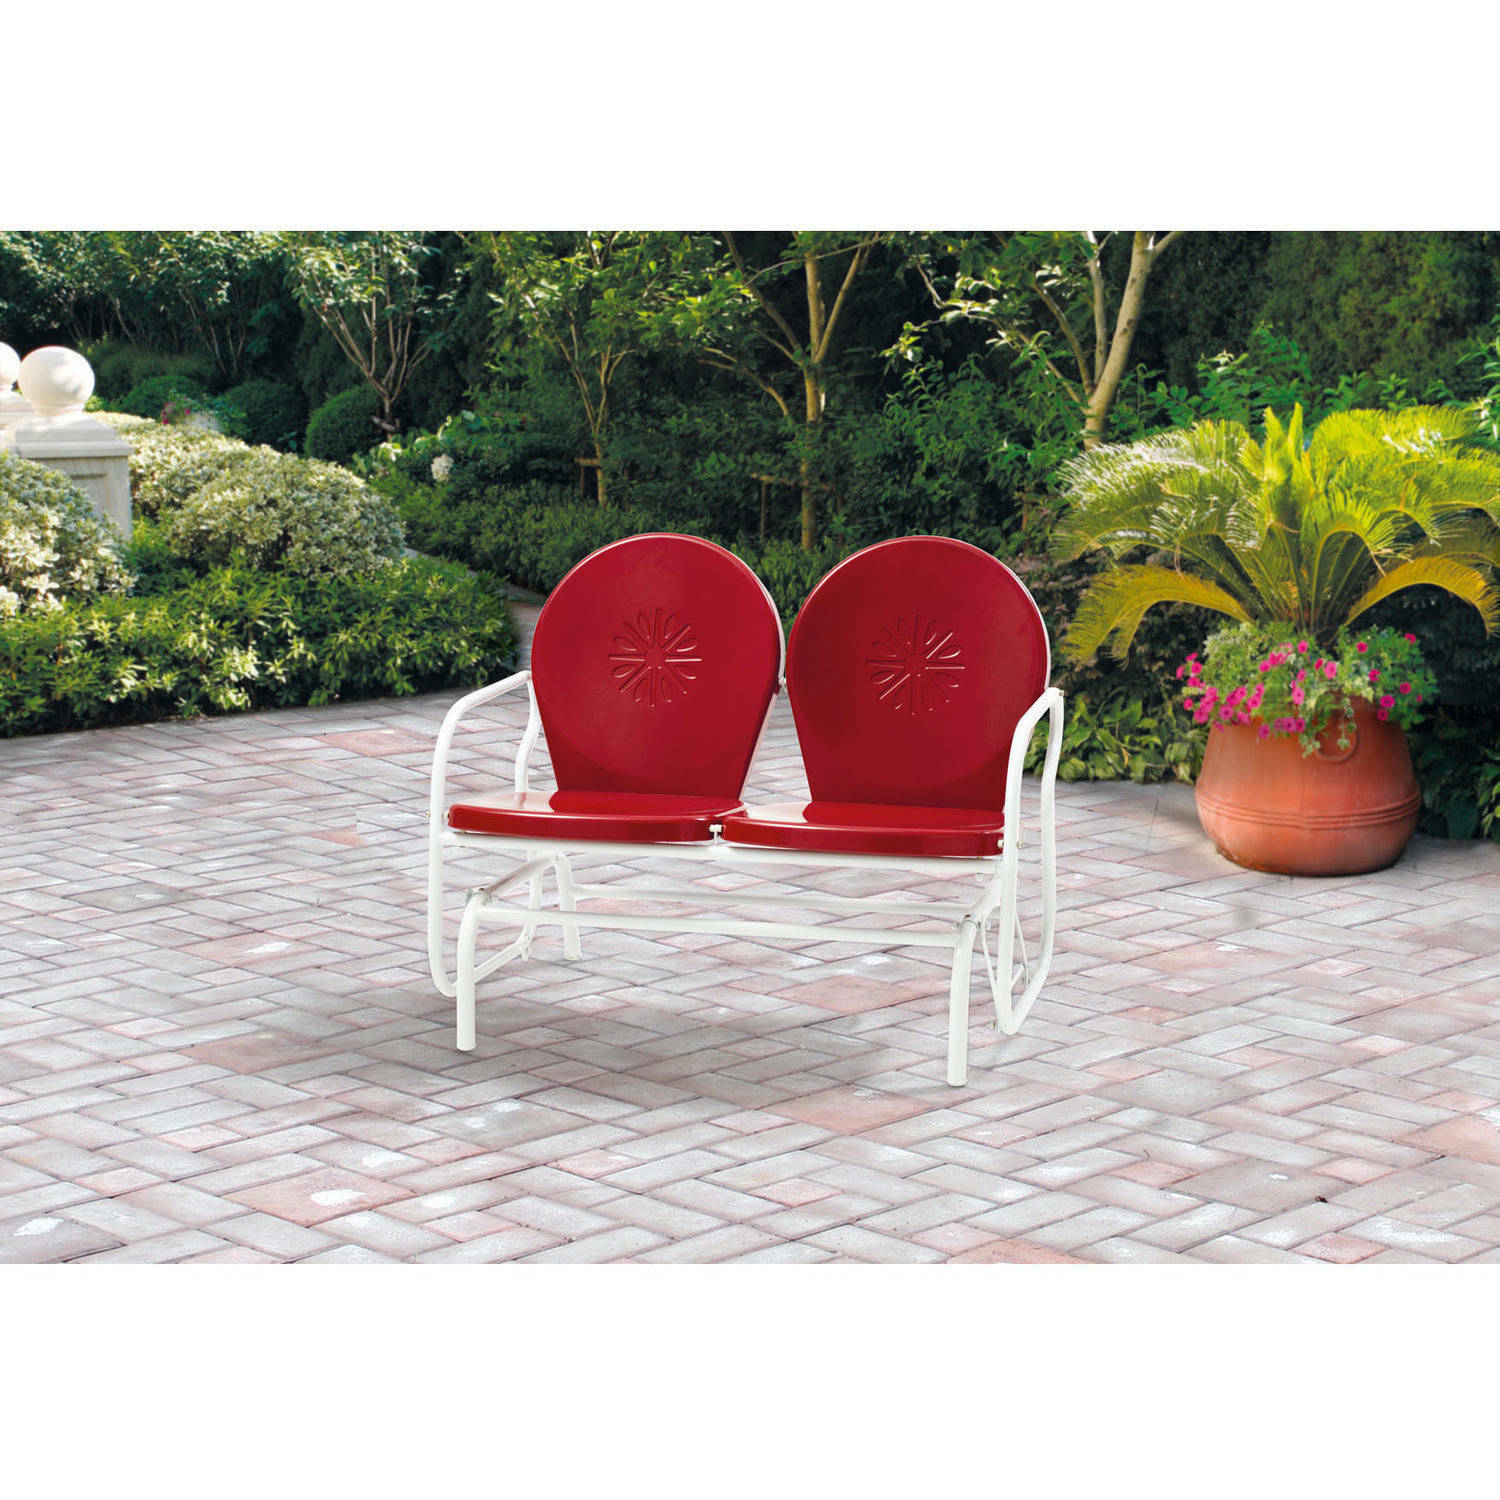 Retro Metal Glider Garden Seating Outdoor Furniture Yard Patio Red Chair  Seats 2 For Metal Powder Coat Double Seat Glider Benches (View 9 of 25)